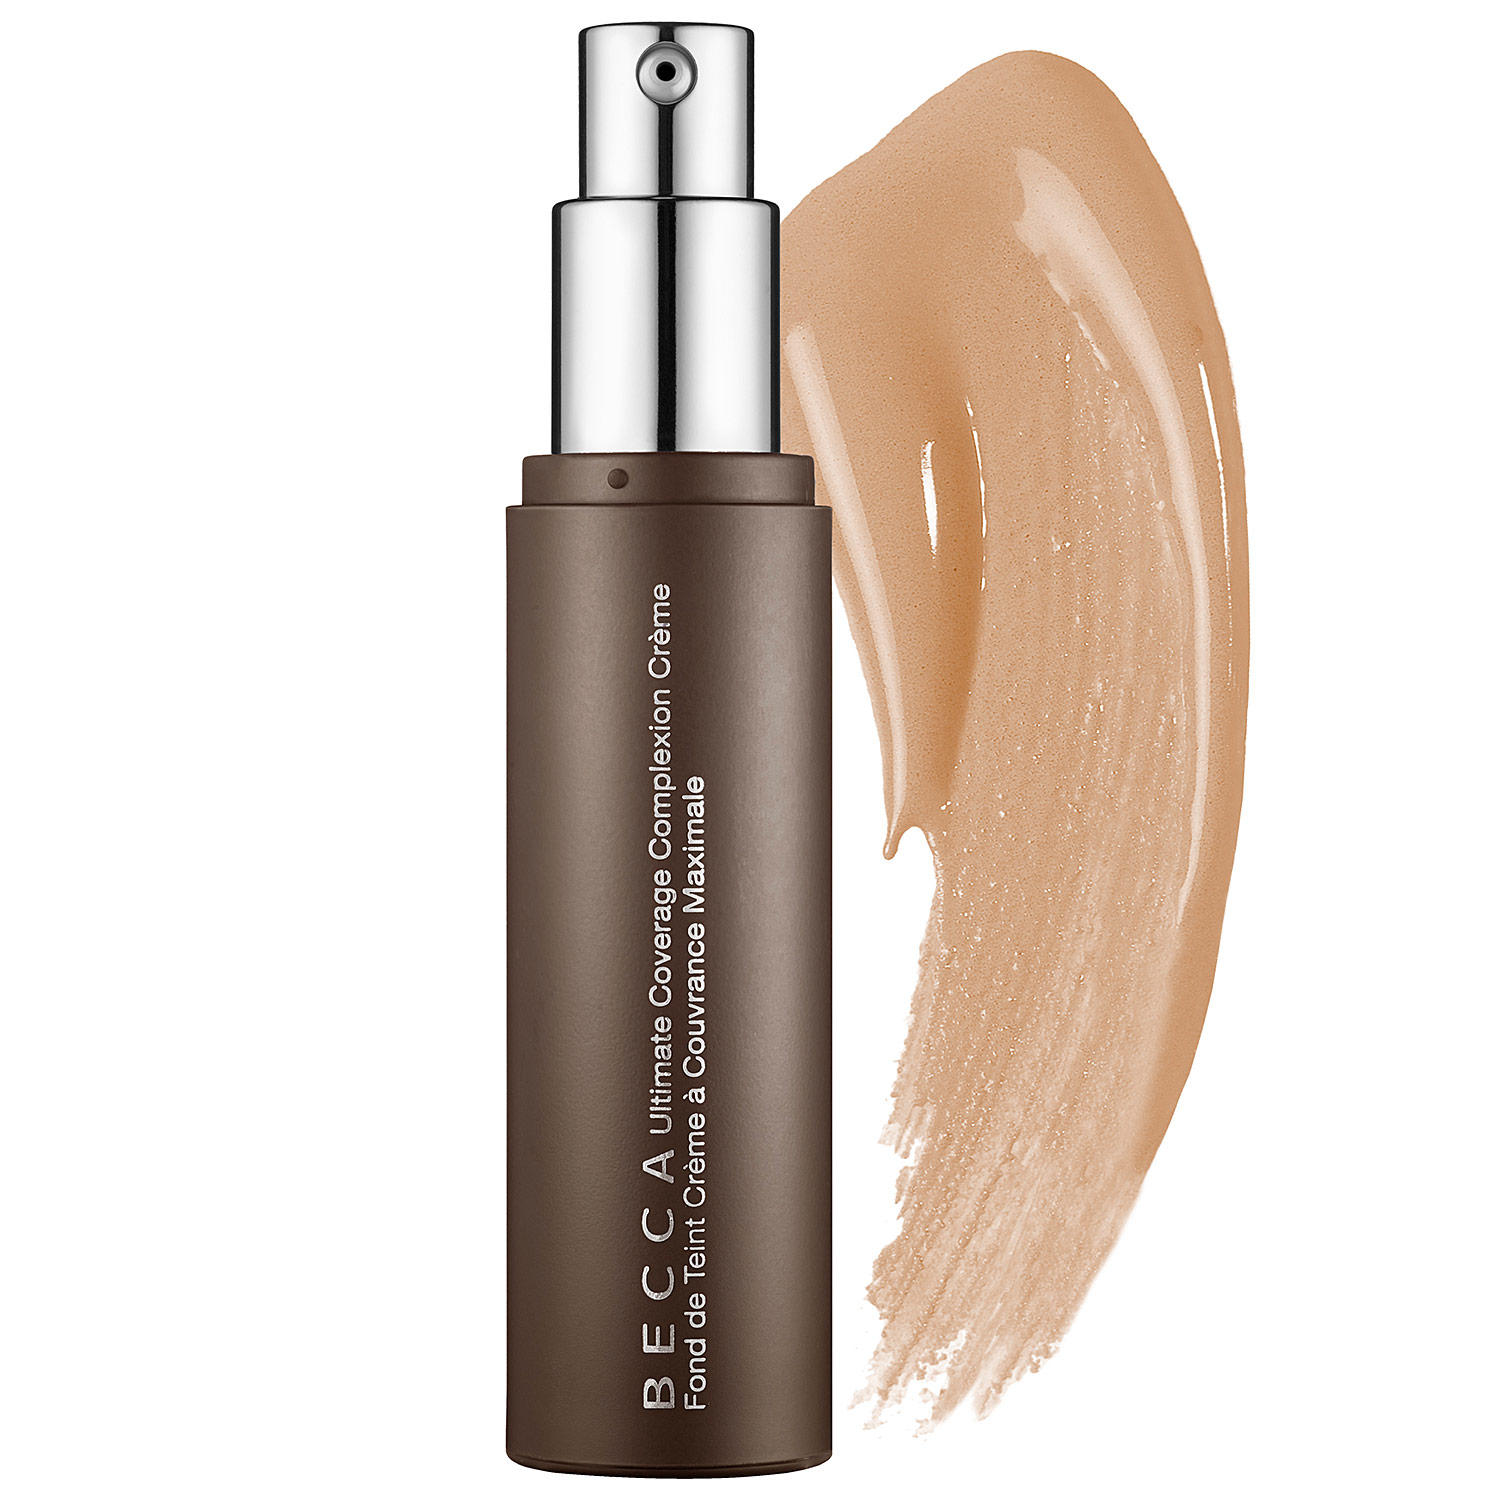 BECCA Ultimate Coverage Complexion Creme Cashmere